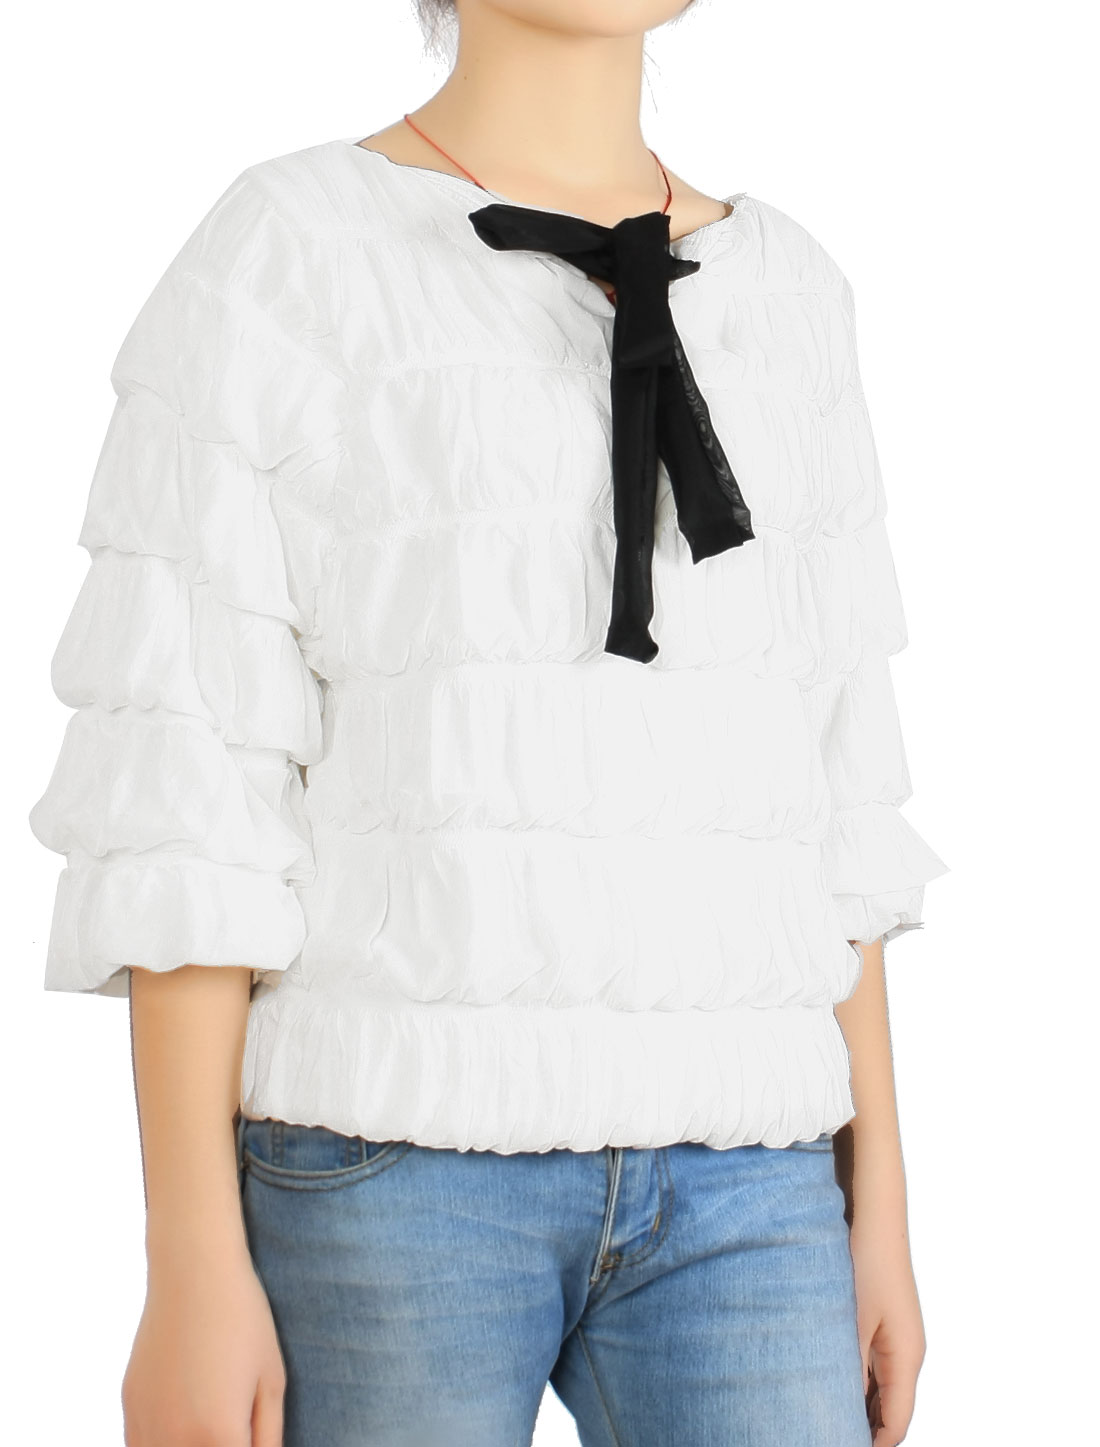 White Ruffled 3/4 Sleeve Pullover Autumn Outwear Coat XS for Woman